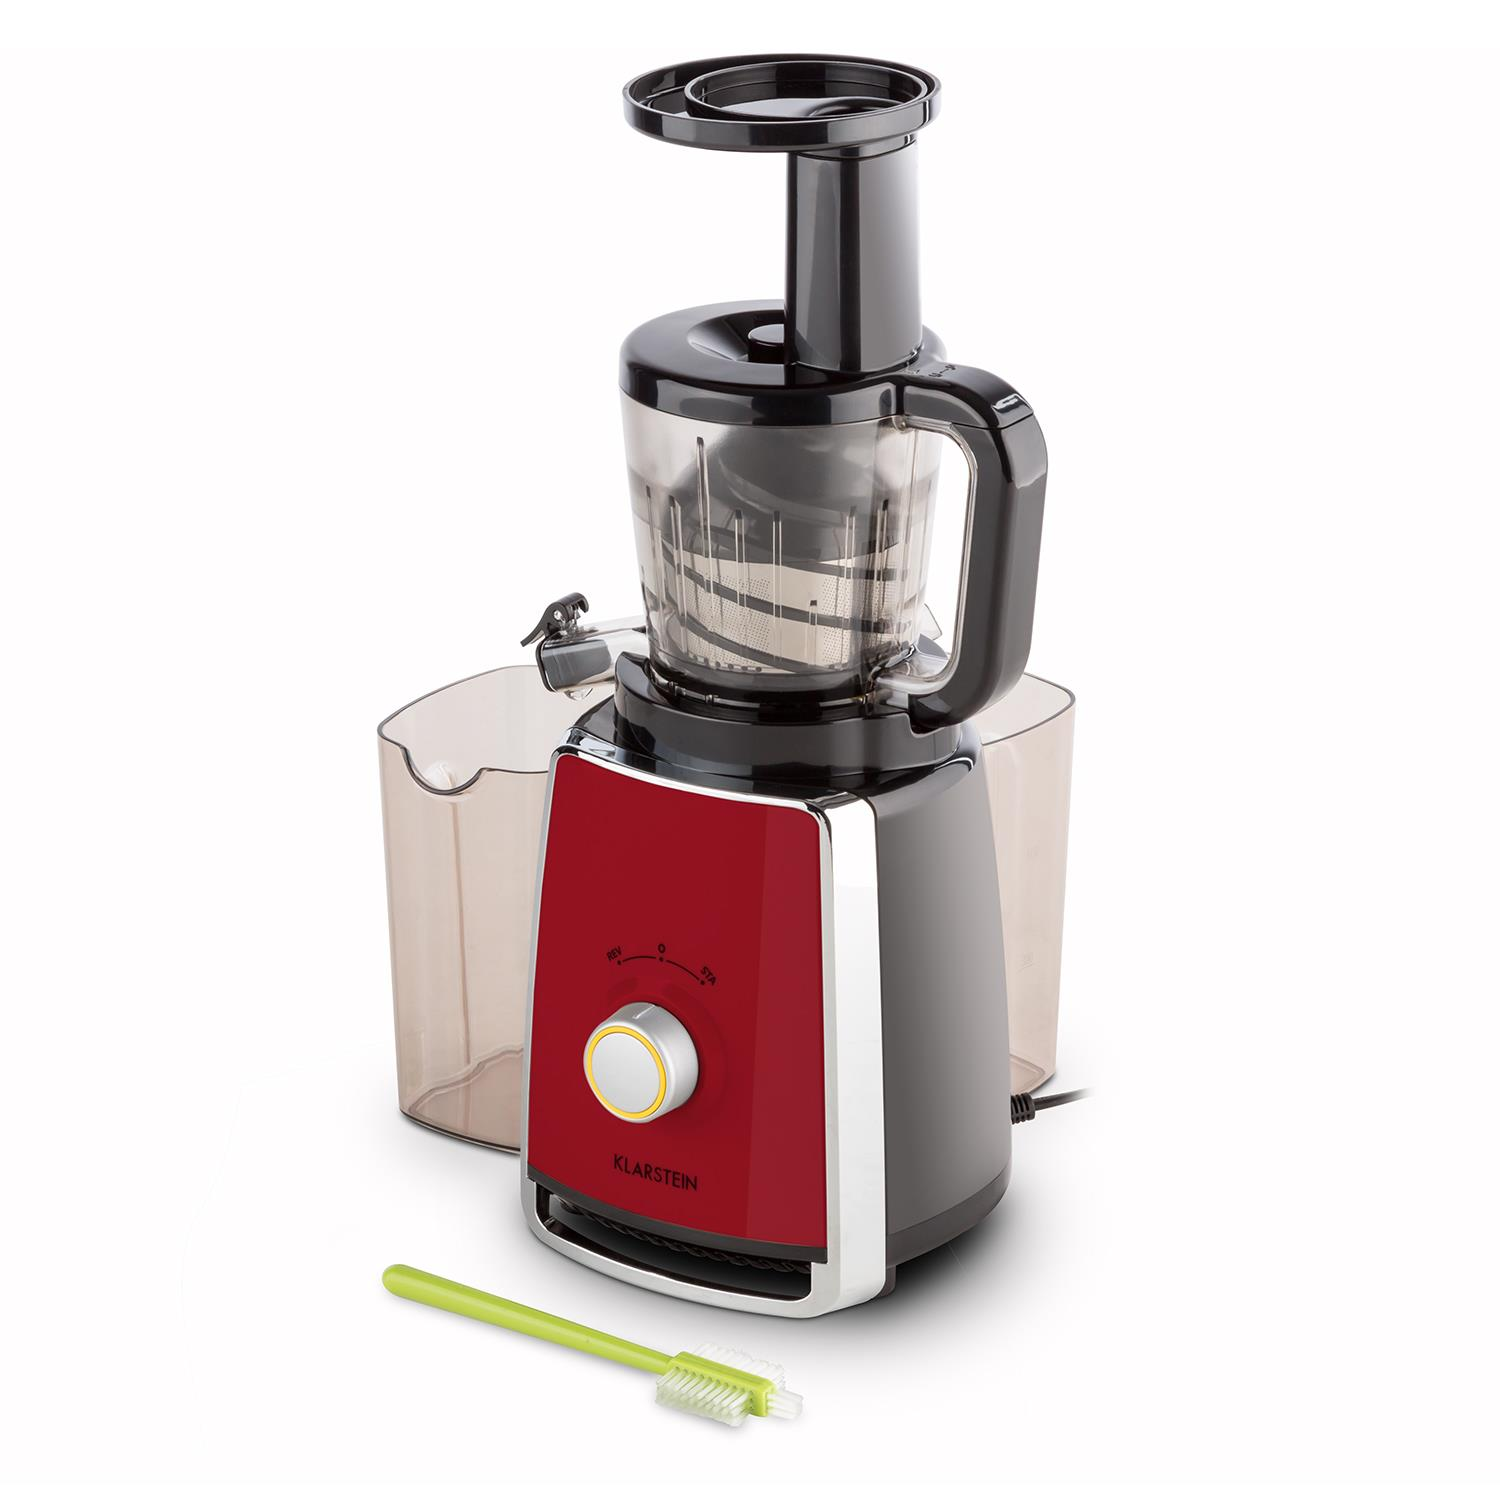 Klarstein Slow Juicer Opinioni : KLARSTEIN SLOW JUICER ELECTRIC TABLE TOP KITCHEN MACHINE COLD PRESS FRUIT JUICE eBay